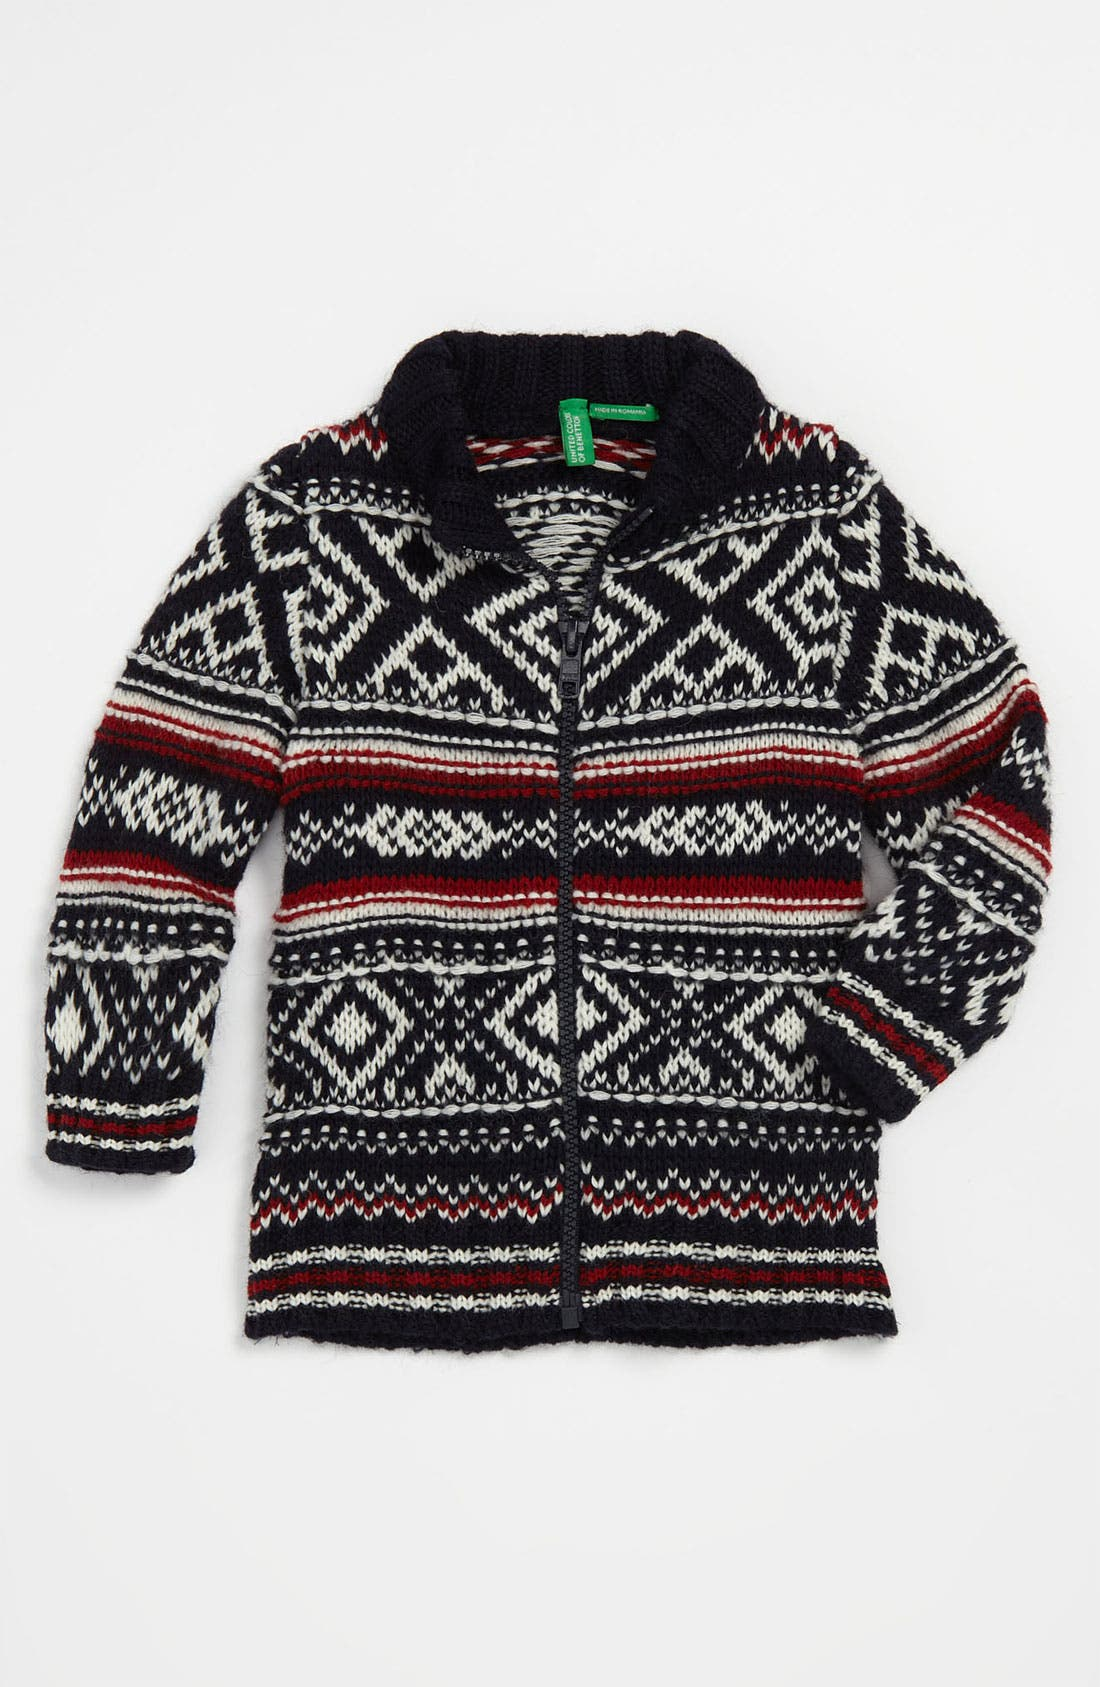 Alternate Image 1 Selected - United Colors of Benetton Kids 'Novelty' Sweater (Infant)